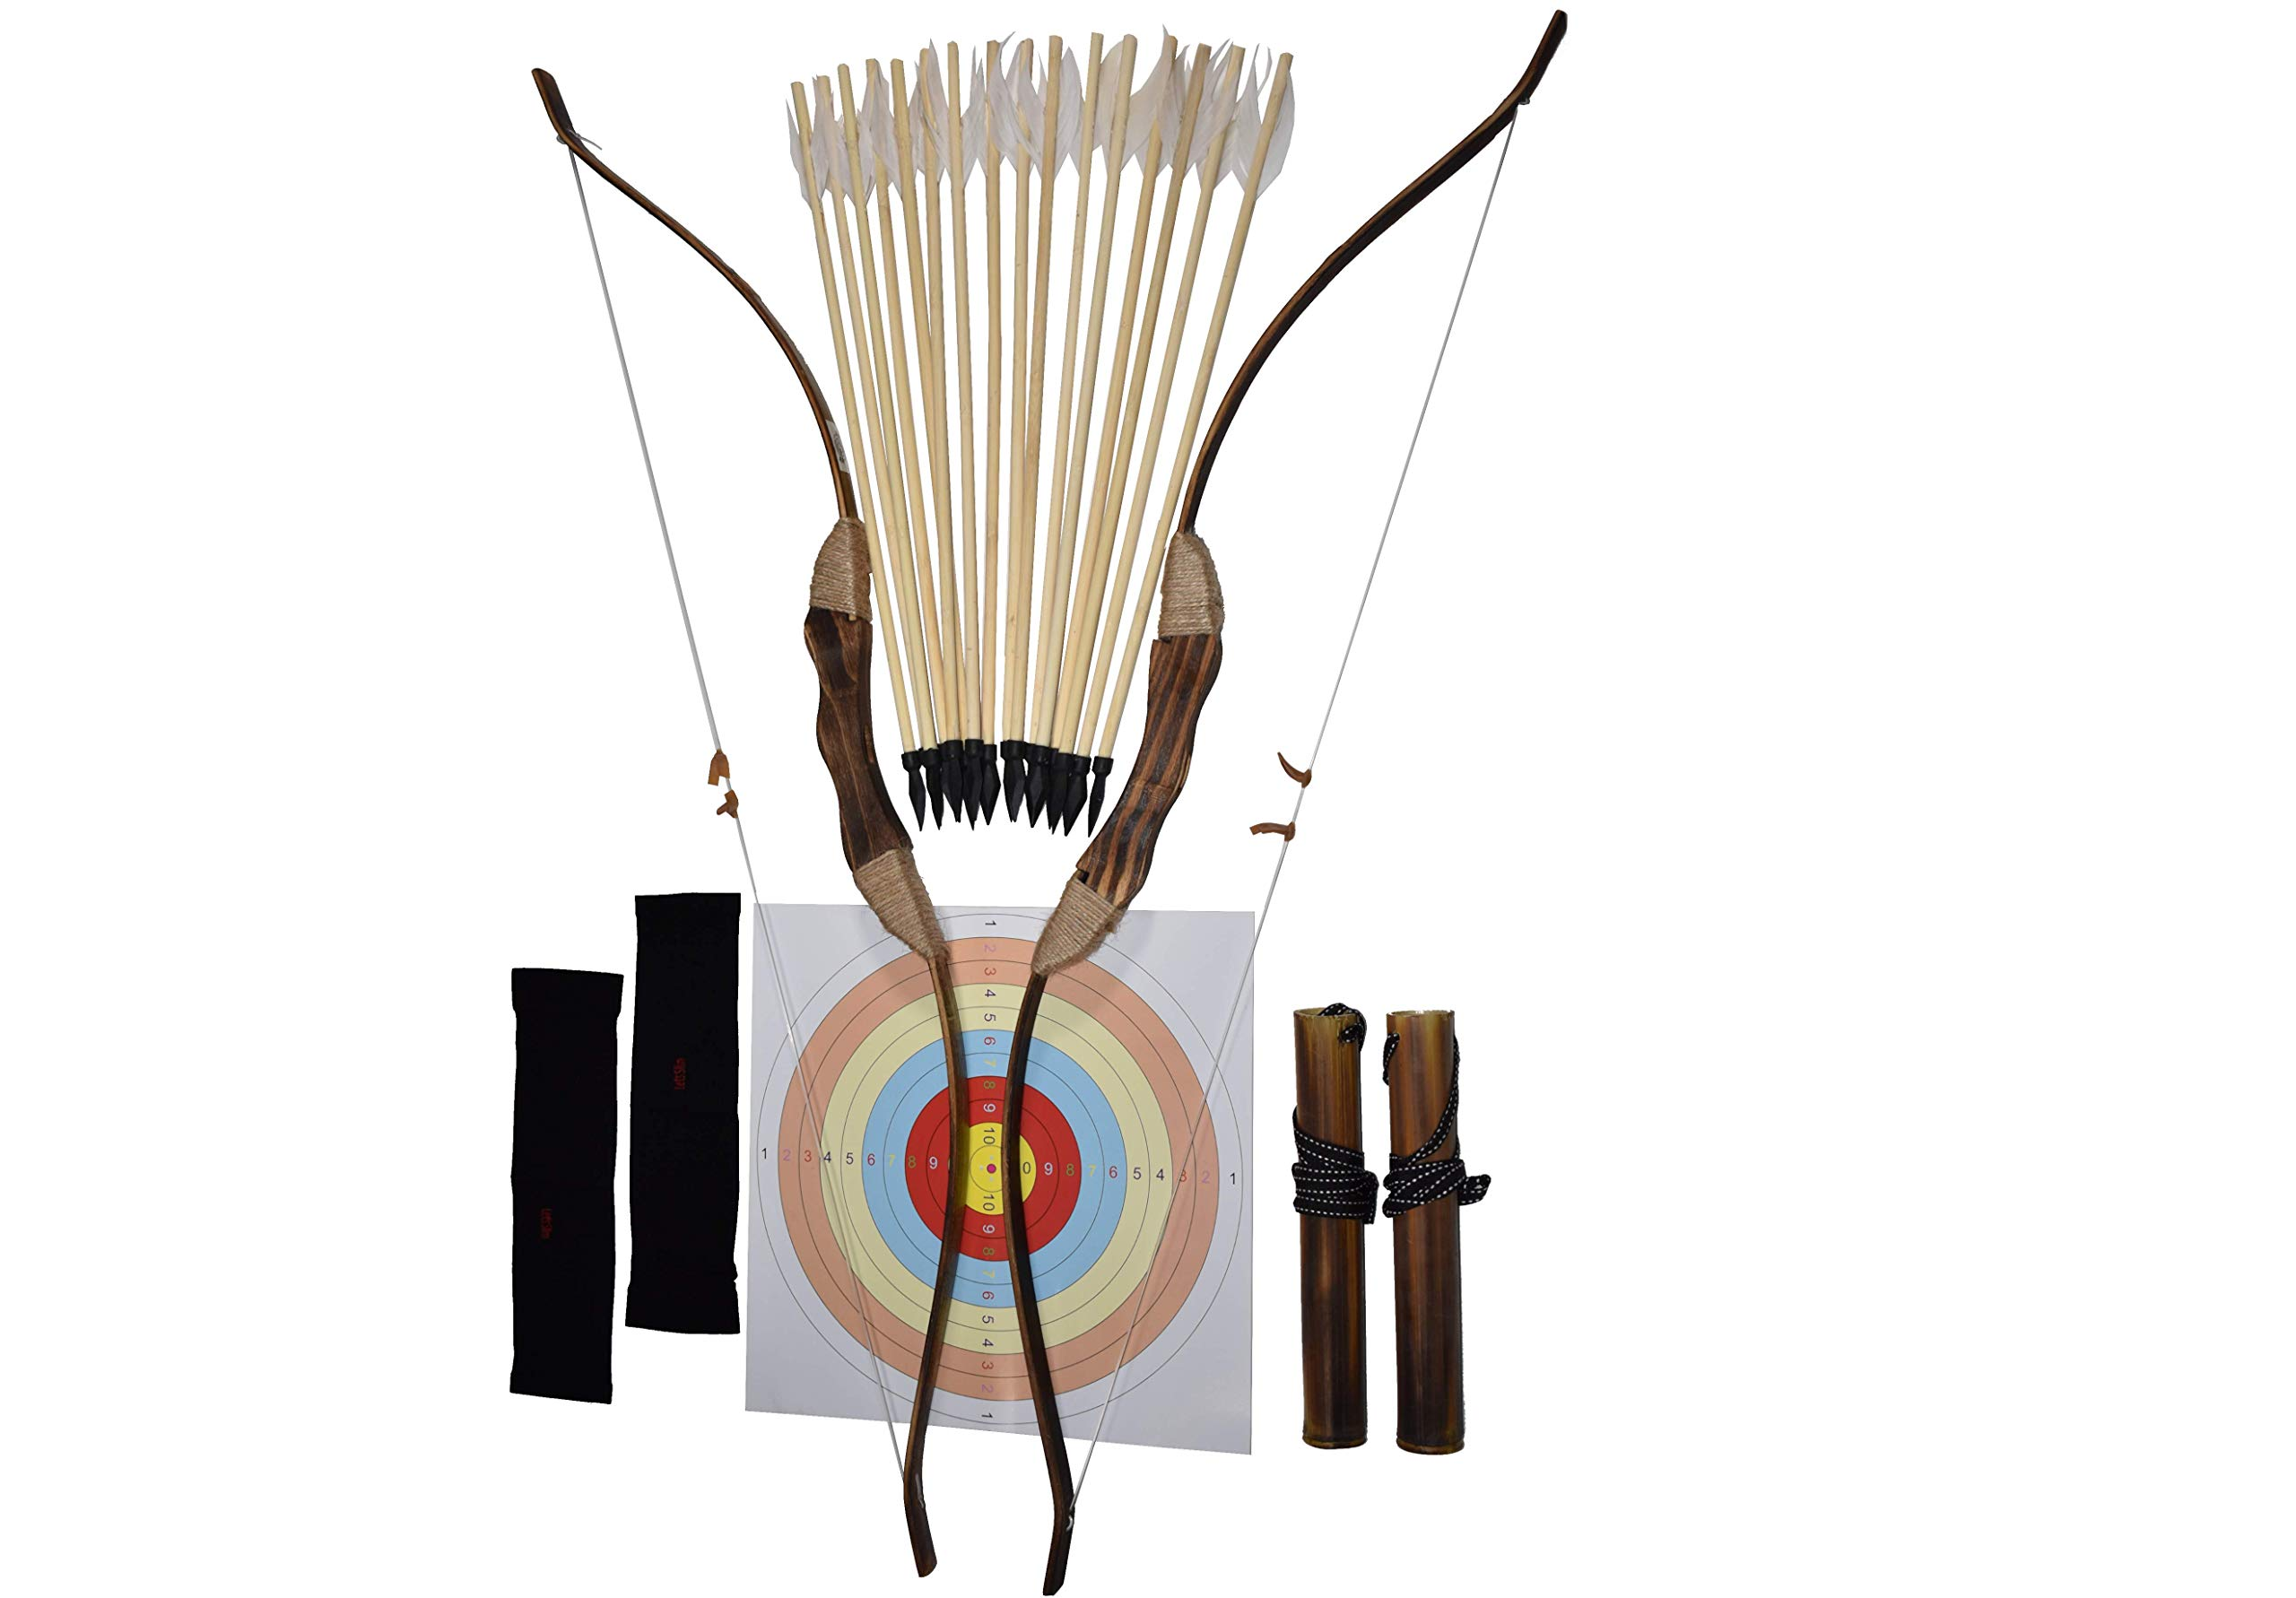 FSFF Enhanced Wooden Bow and Arrow for Kids 2-Bows 2-Four Arrow quivers 16-Arrows w/ Feathers 10-Large Targets & 2-armguards Great Archery Set for Youth boy / Girl Beginner Archery Set for Kids by Fins, Skins, Furs and Feathers